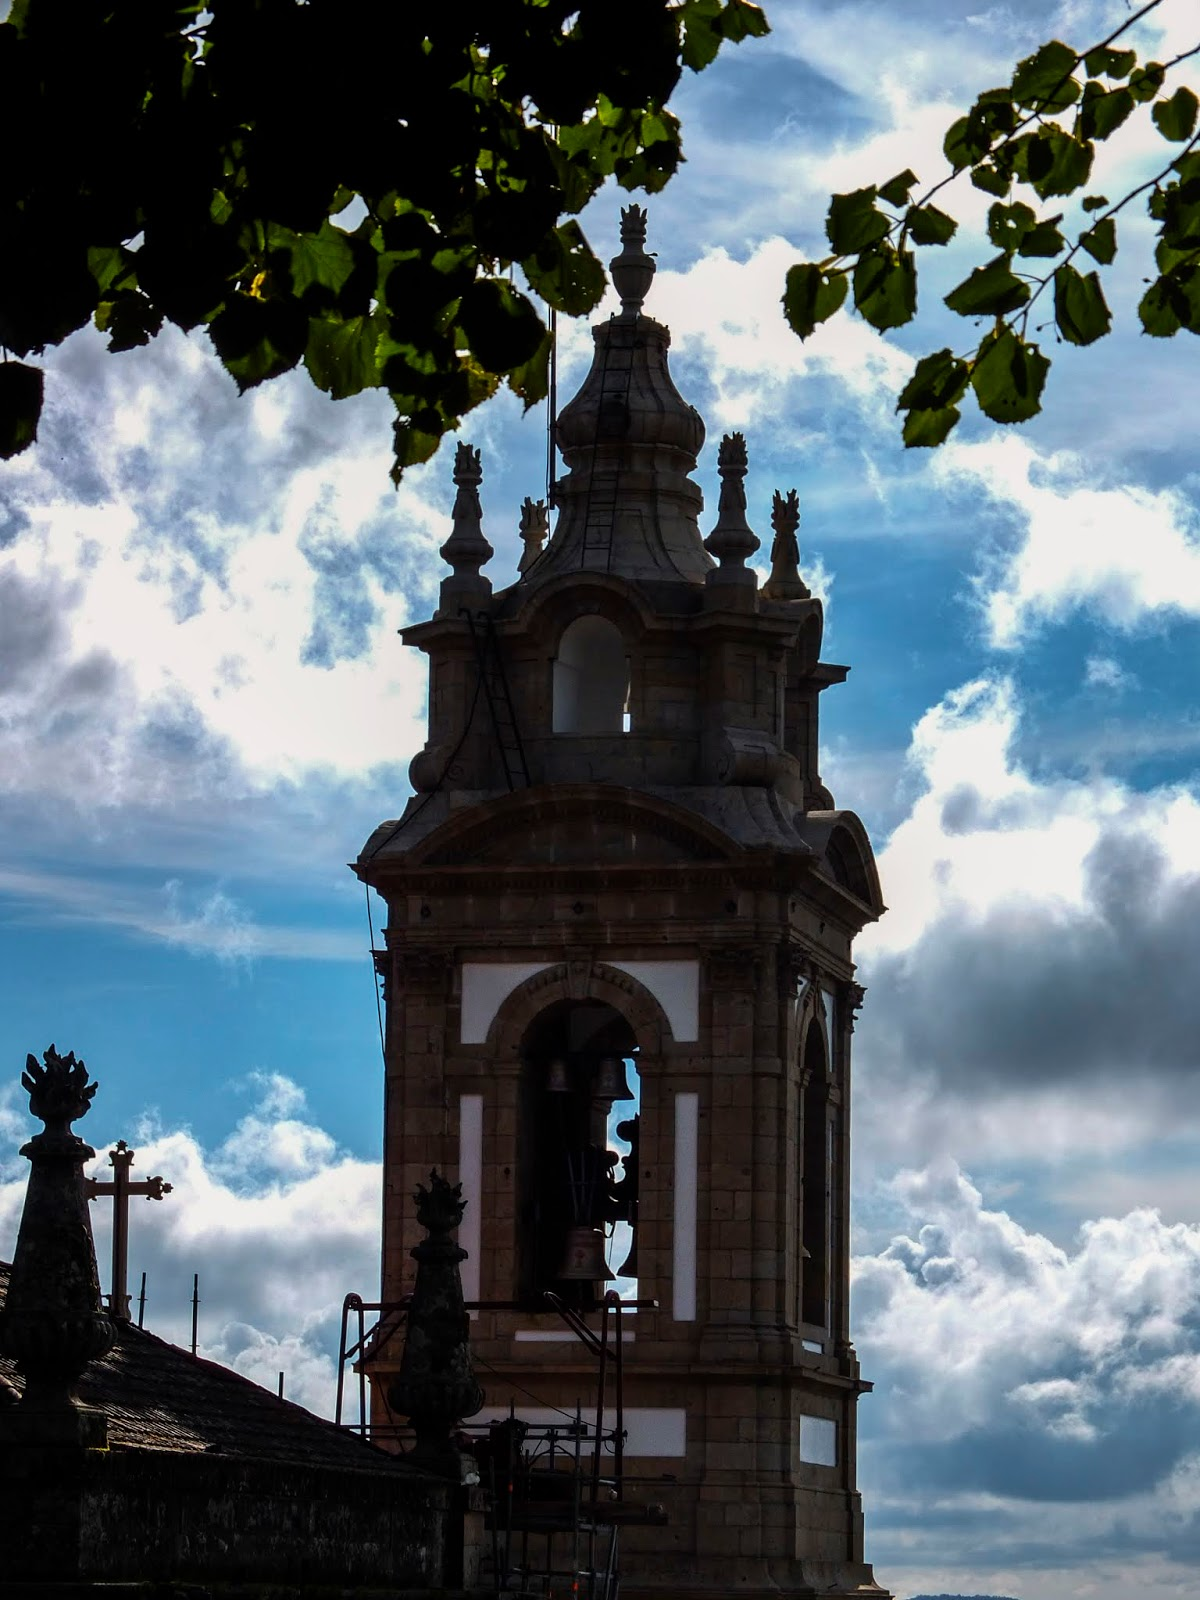 Church bell tower in the Sanctuary of Bom Jesus do Monte in the Tenões region in Portugal.